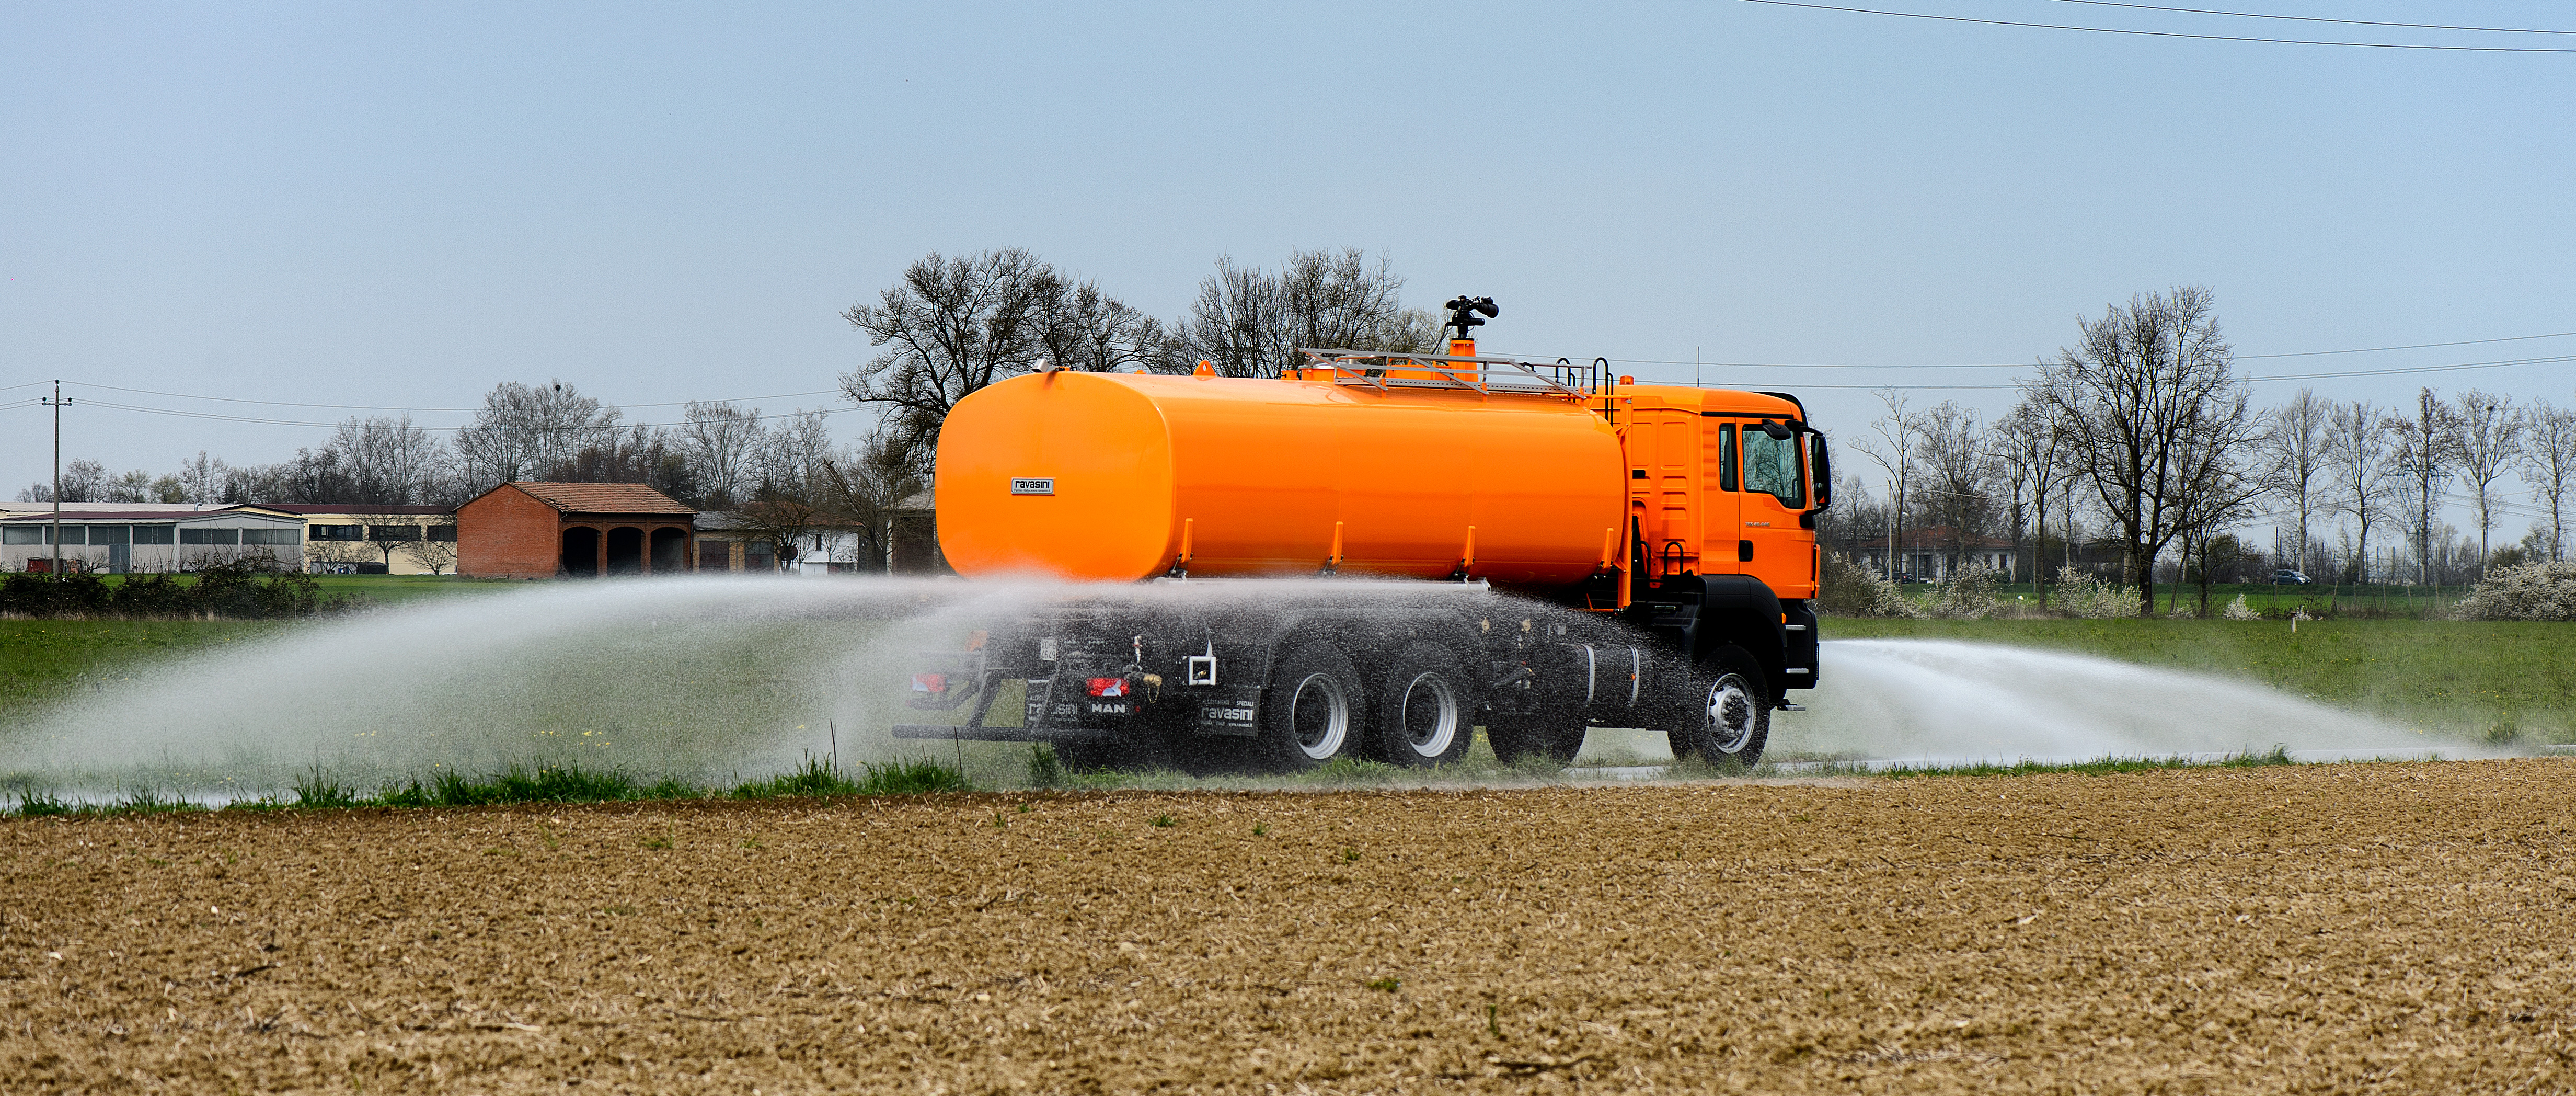 Water_tanker_on_MAN_truck